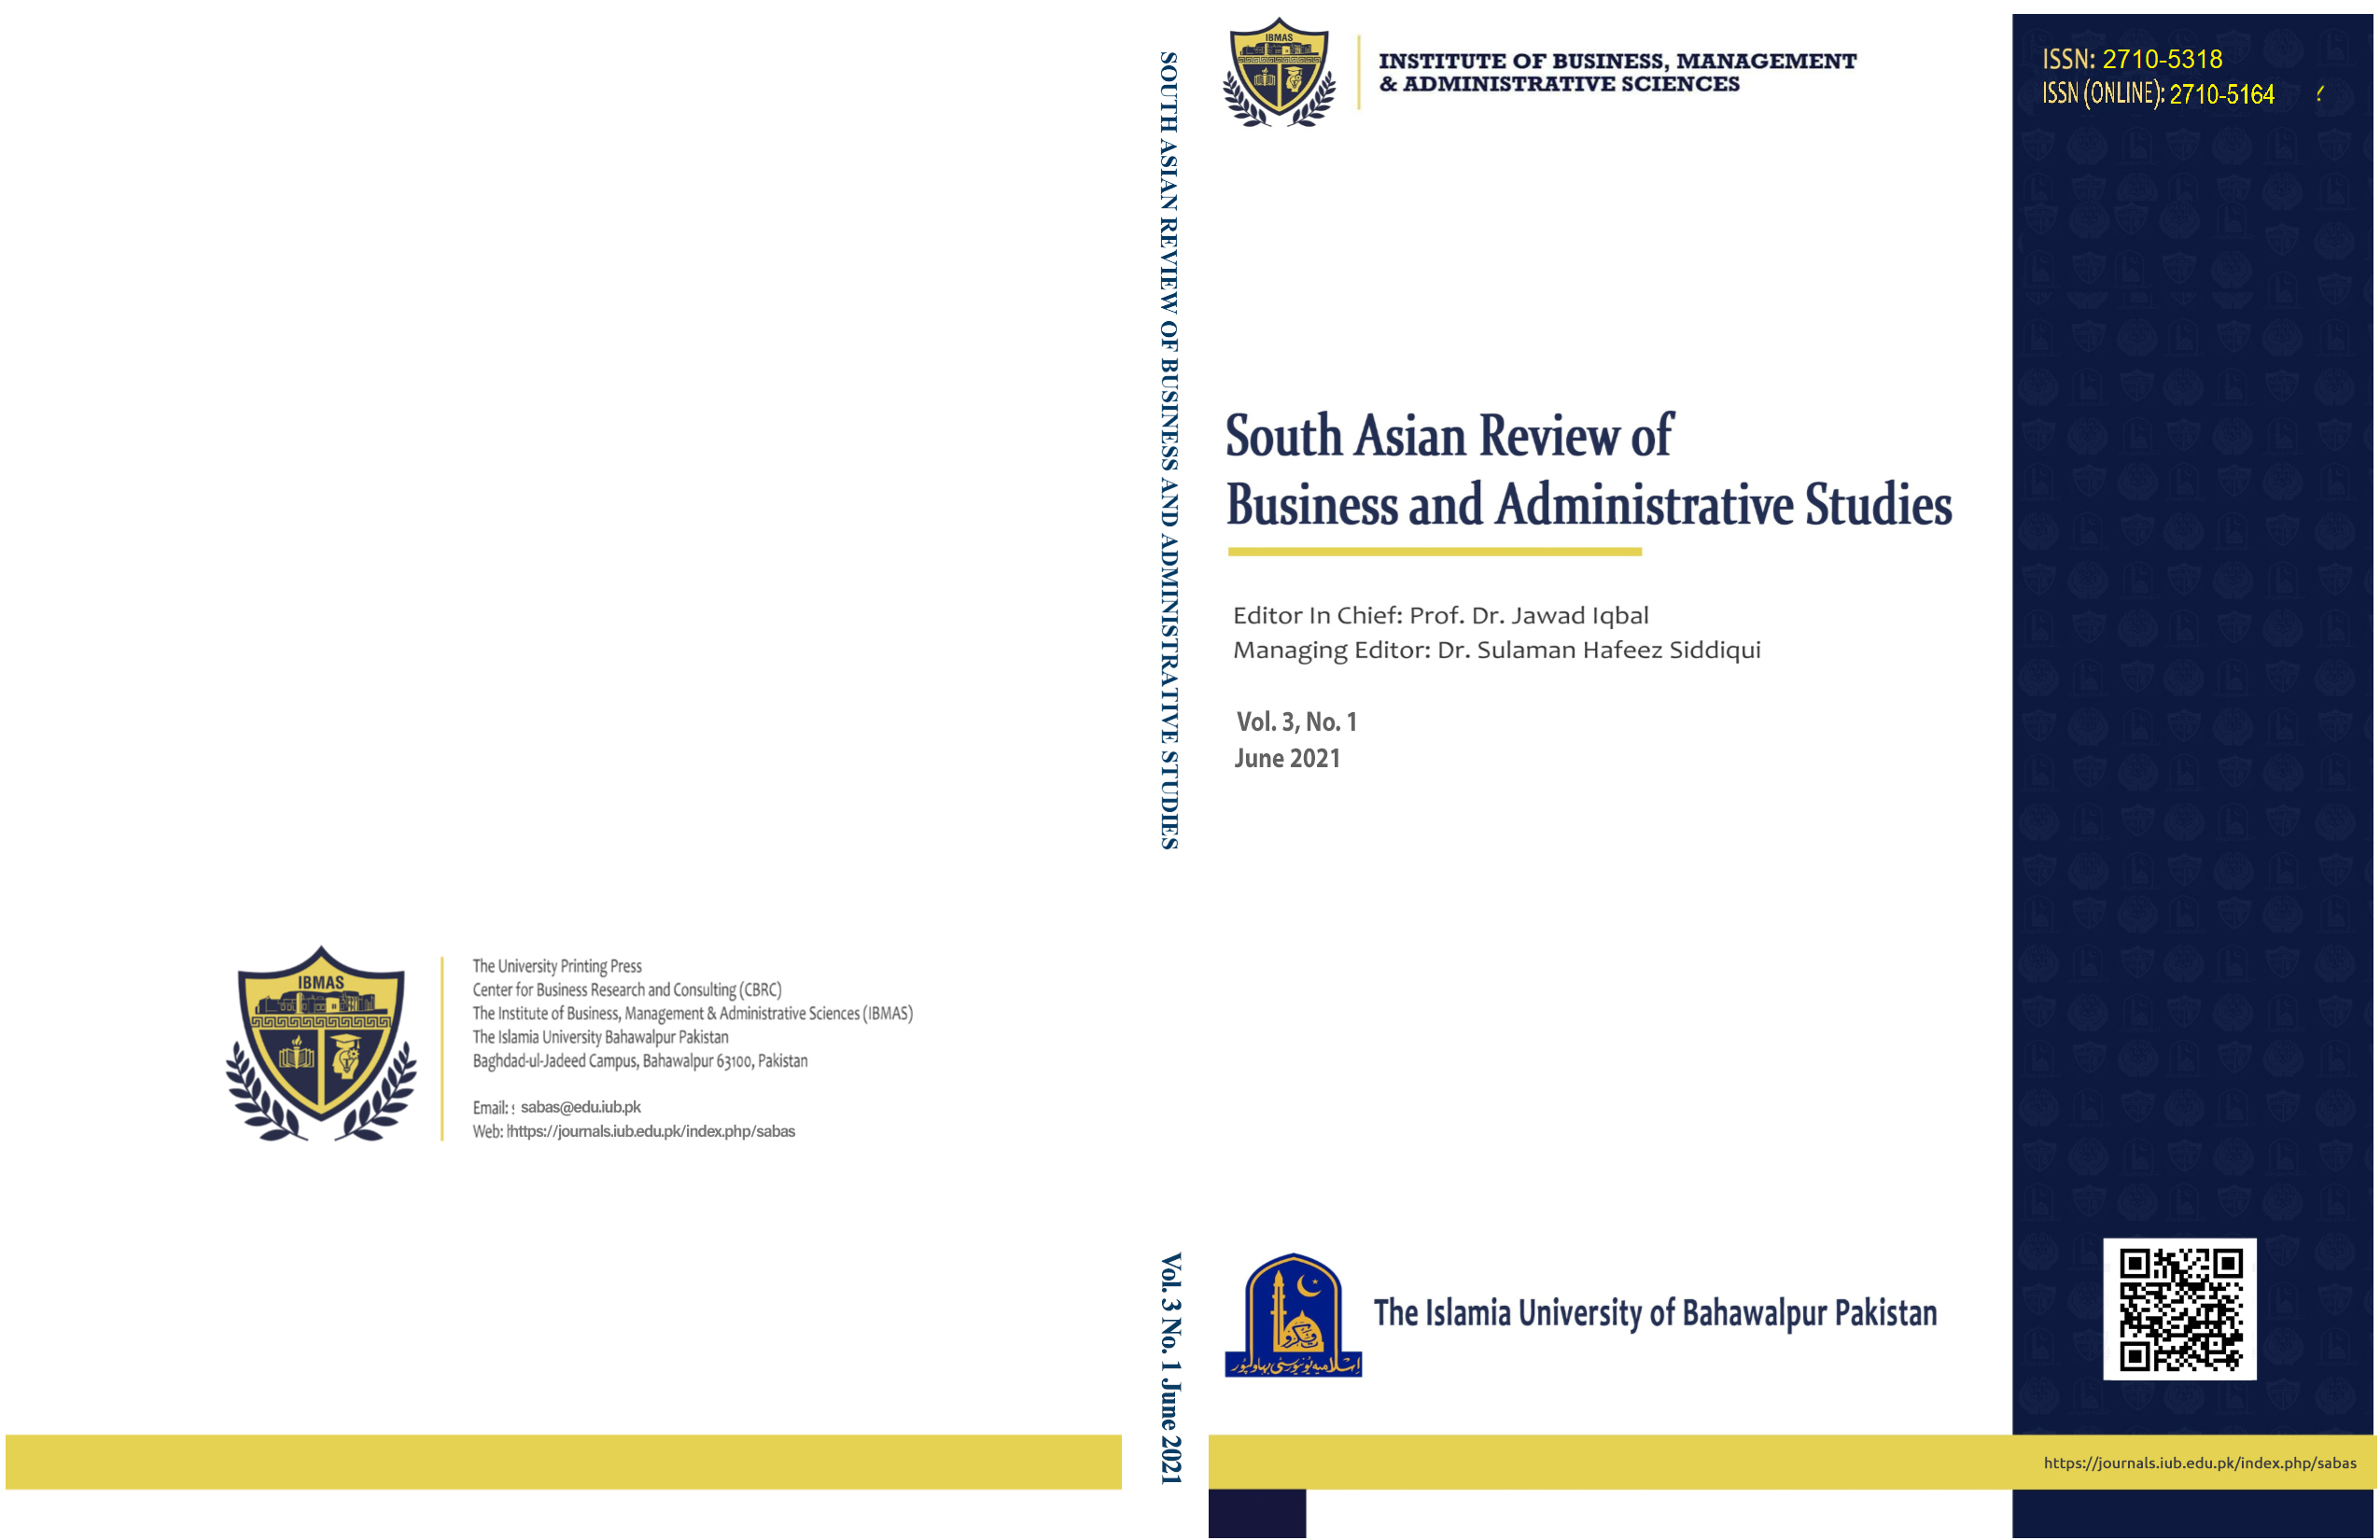 South Asian Review of Business and Administrative Studies